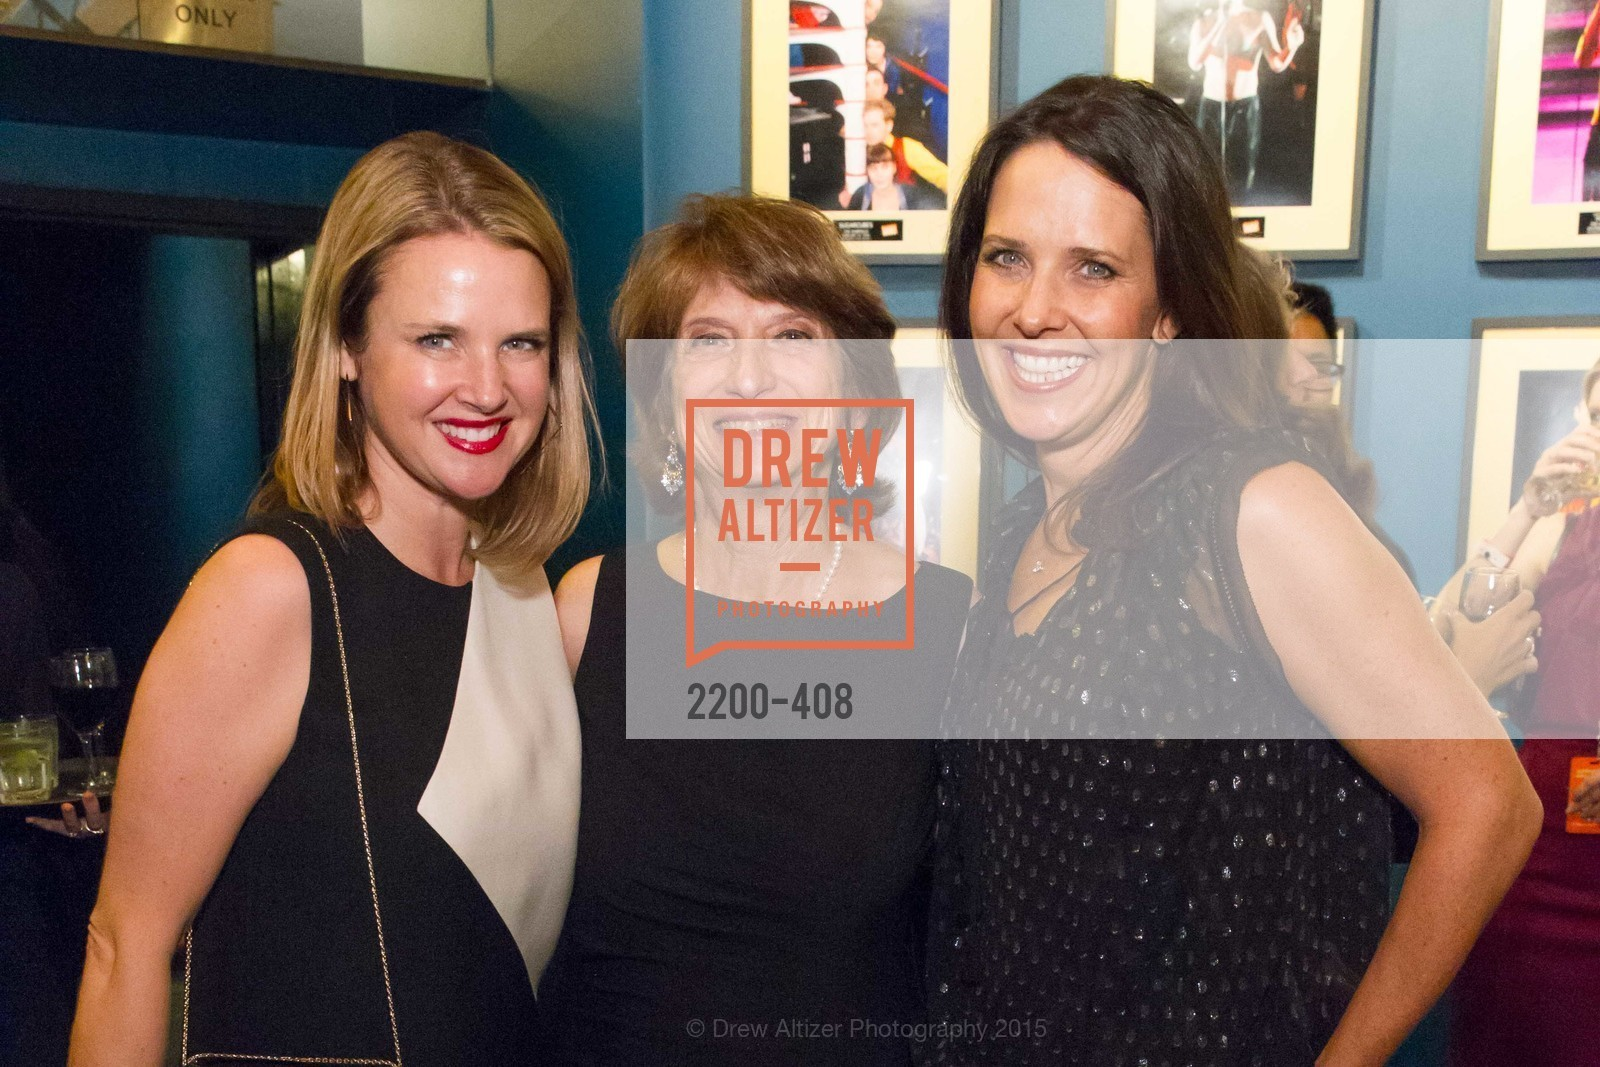 Allison Rose, Carla Javits, Megan Barton, REDF's 2015 BENEFIT featuring JOURNEY, The Warfield Theatre. 982 Market St, October 22nd, 2015,Drew Altizer, Drew Altizer Photography, full-service agency, private events, San Francisco photographer, photographer california